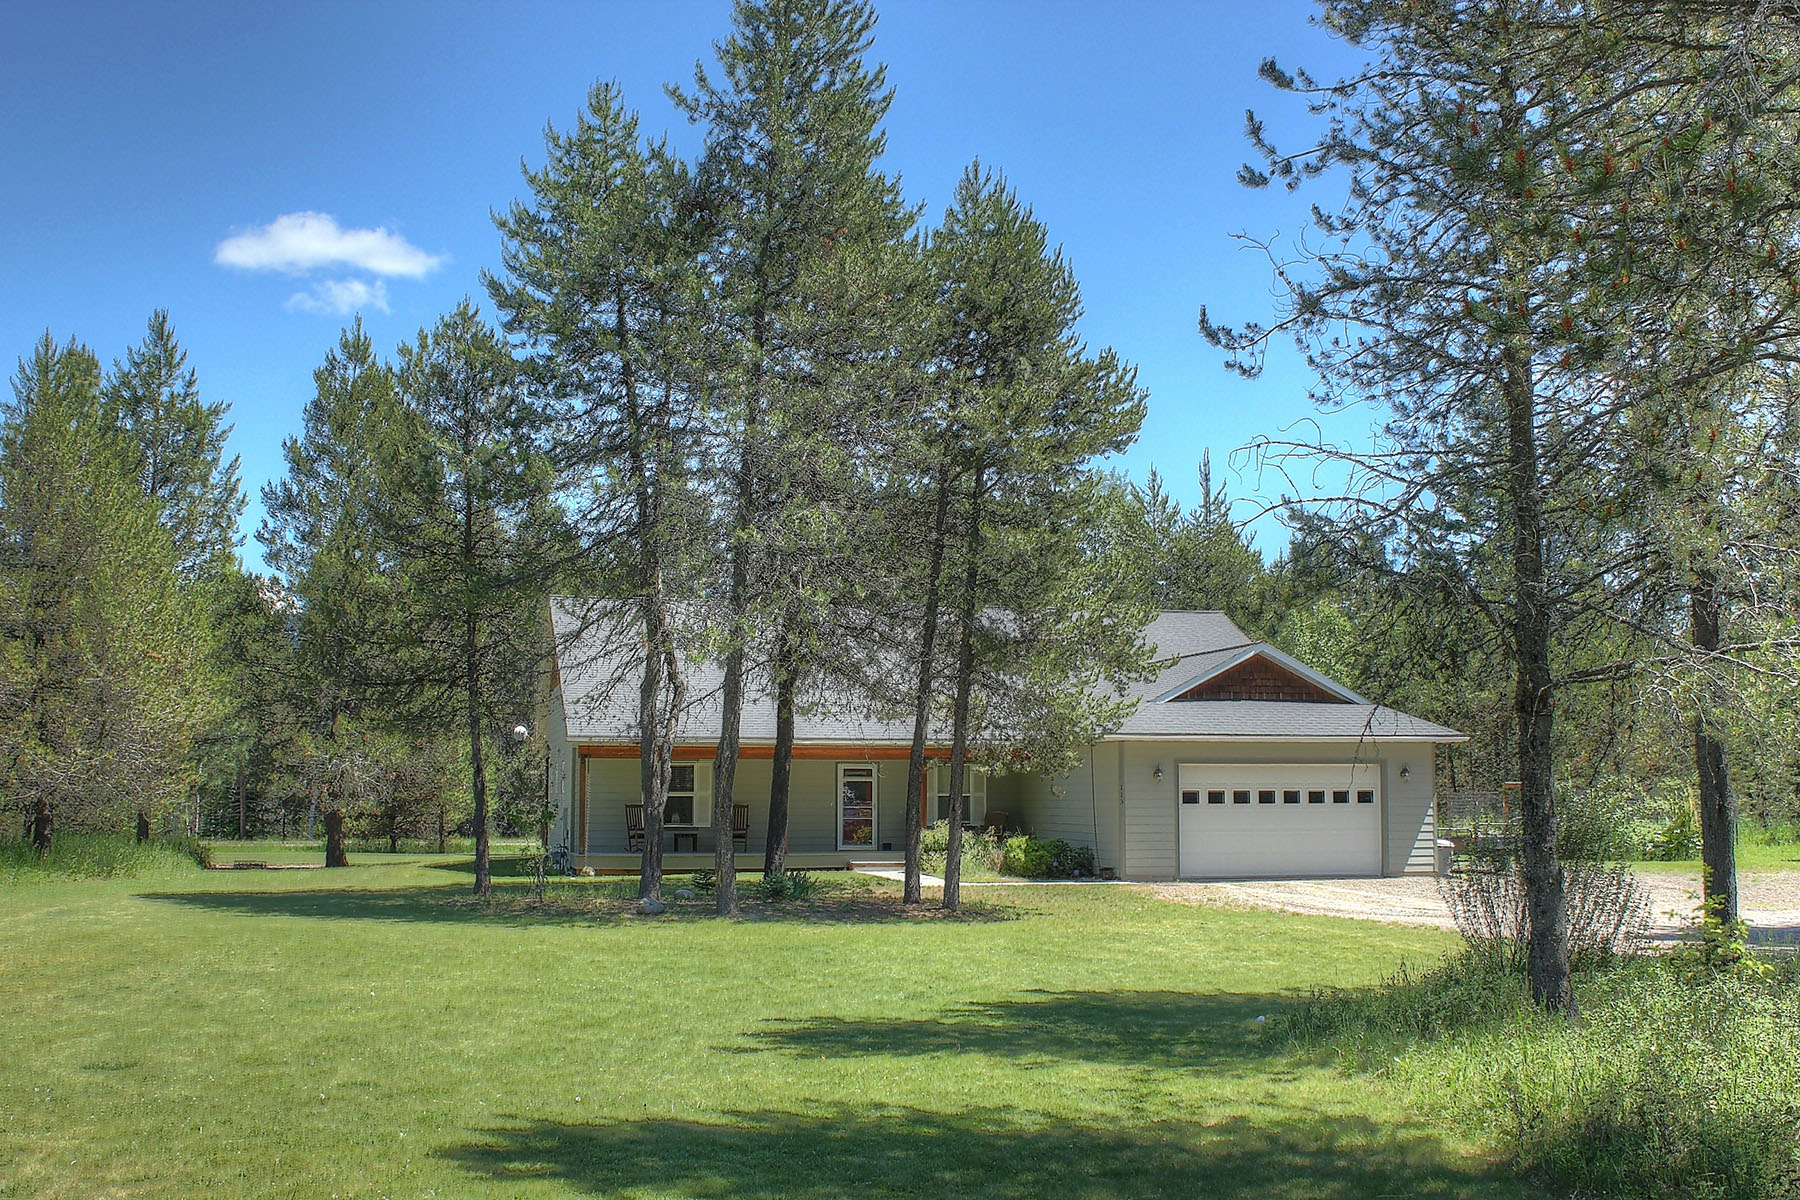 Single Family Home for Sale at Classic ranch style home on 1 acre 113 Carter Dr Sagle, Idaho 83860 United States